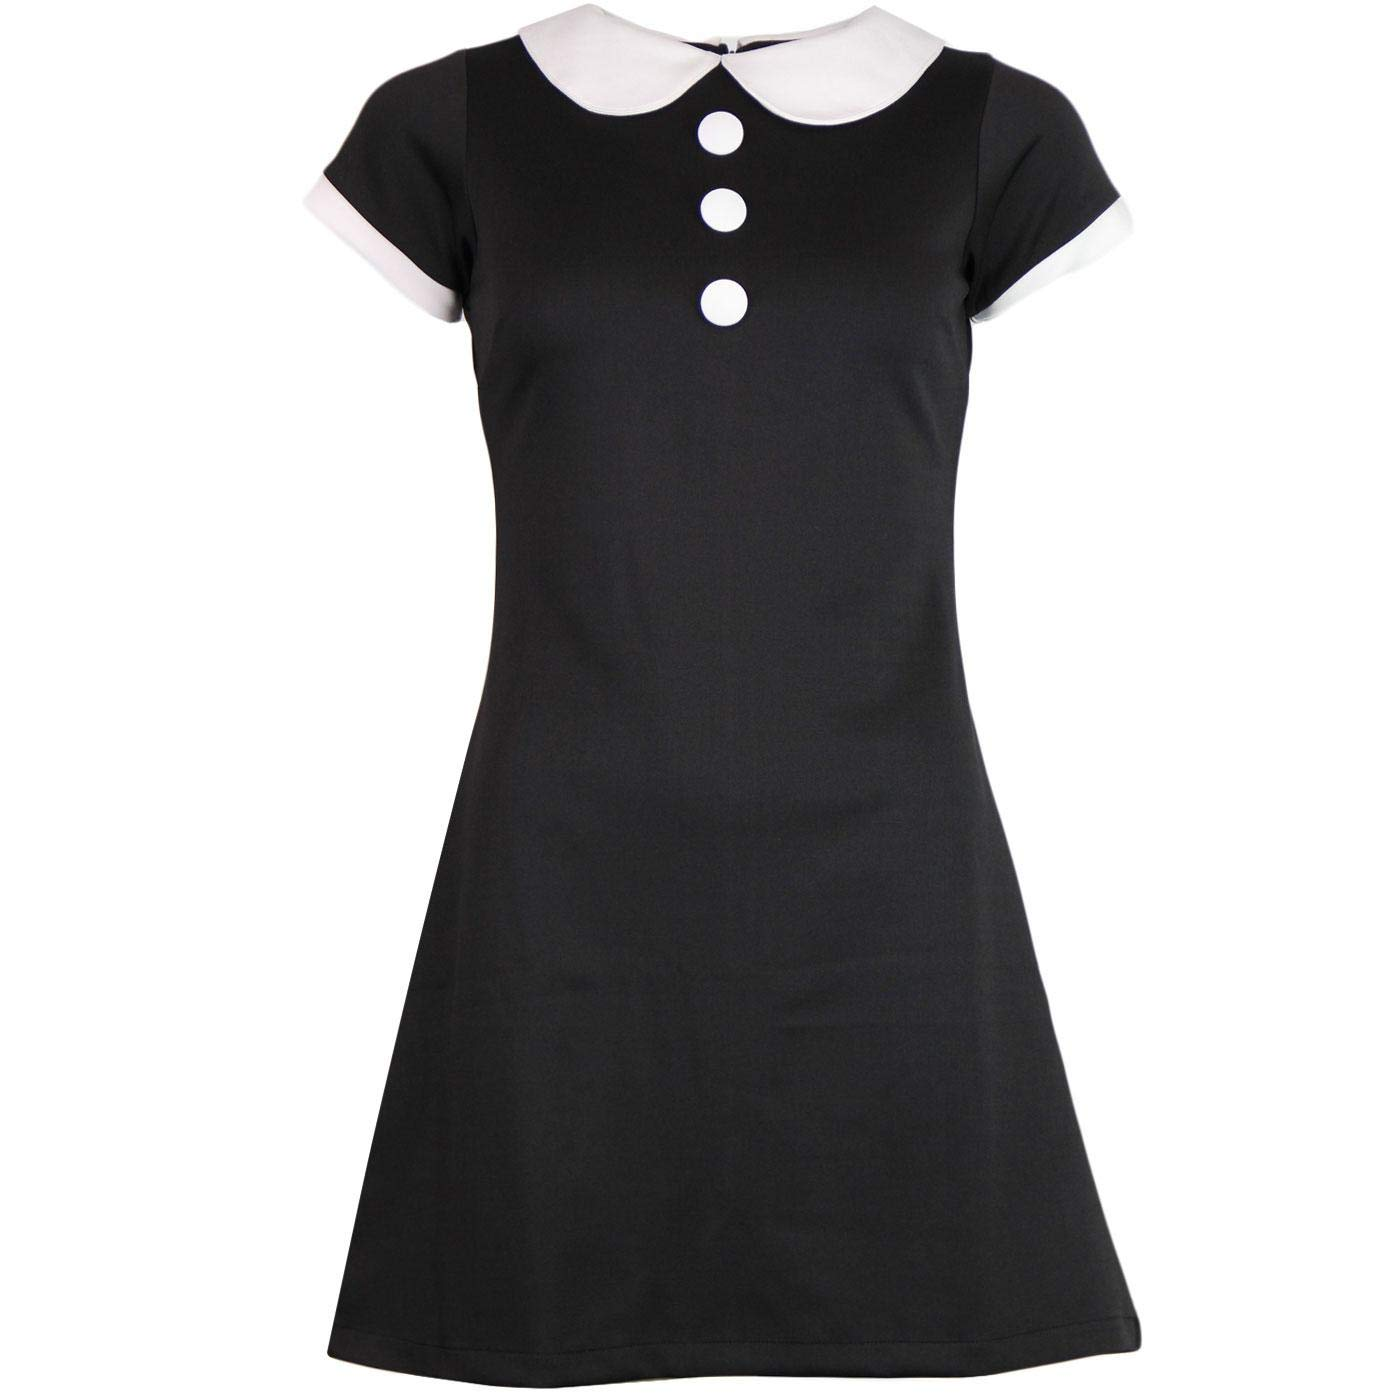 60s Dresses & 60s Style Dresses UK Madcap England Dollierocker Retro 60s Mod Peter Pan Collar Jersey Mini Dress £39.99 AT vintagedancer.com